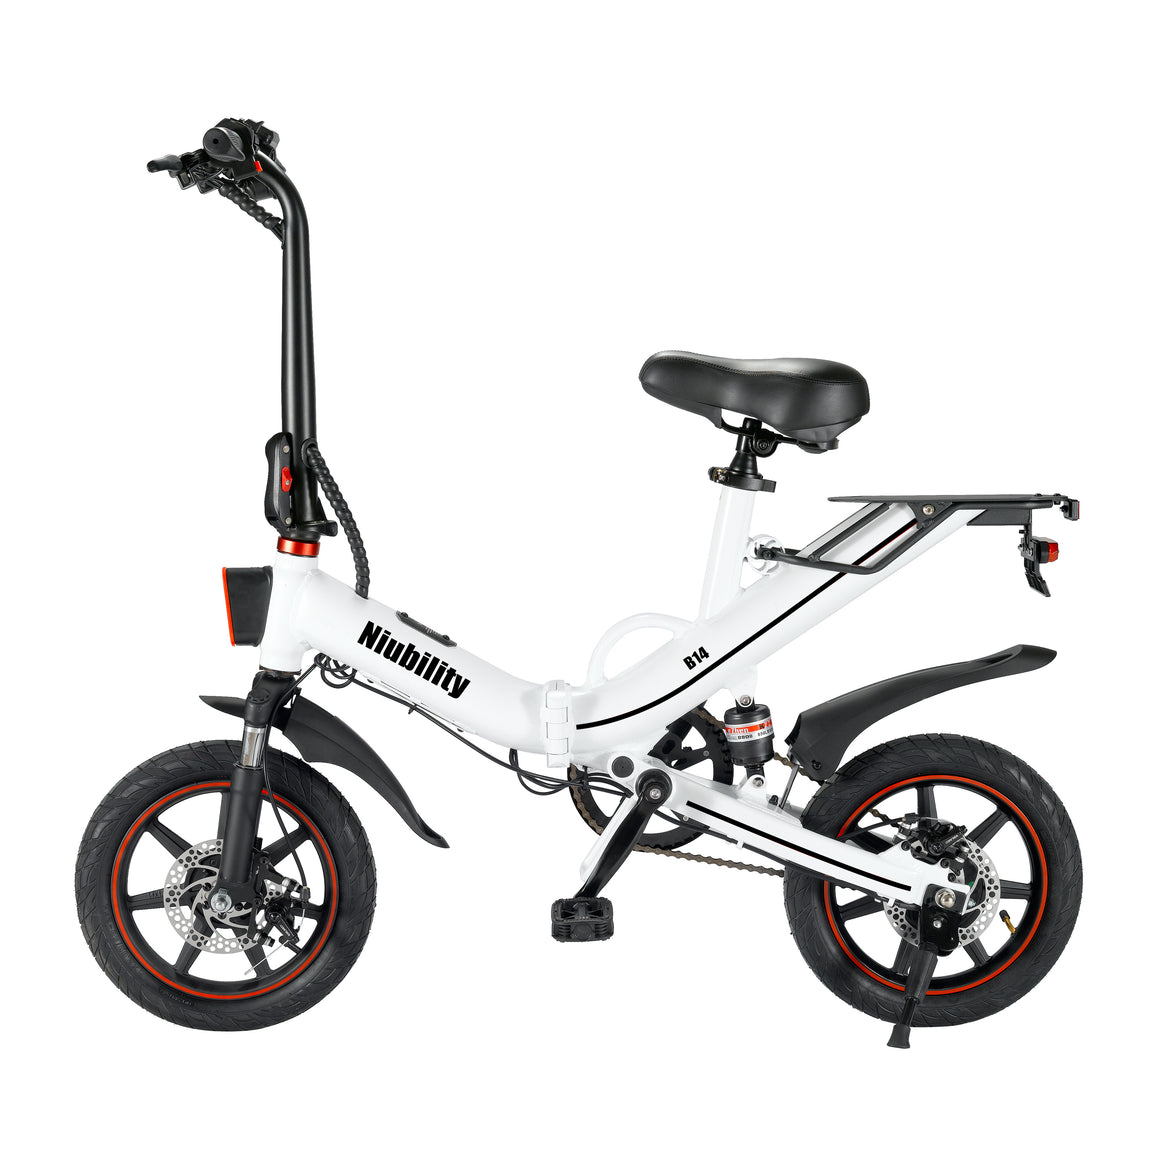 [Free shipping] NIUBILITY B14 ELECTRIC BIKE 400W 15AH 100KM MILEAGE - POLAND